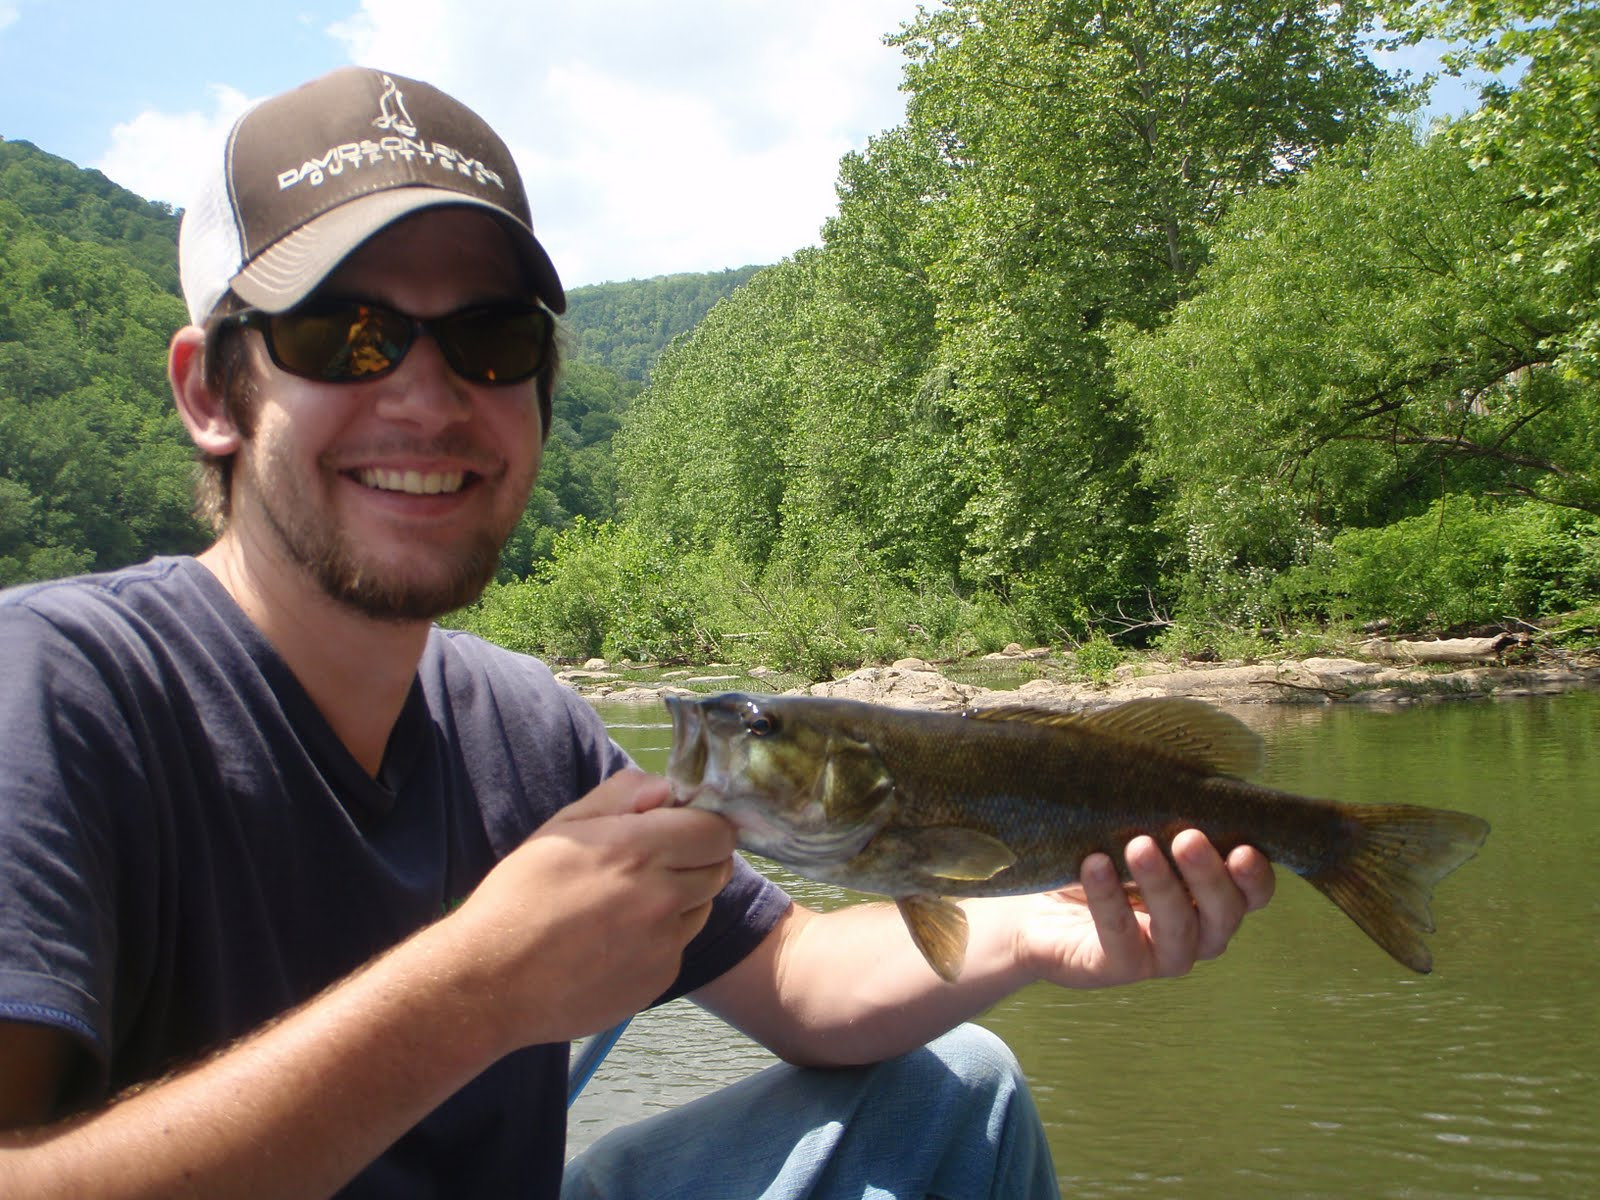 Brown trout fly fishing nolichucky smallmouth bass fishing for Smallmouth bass fly fishing